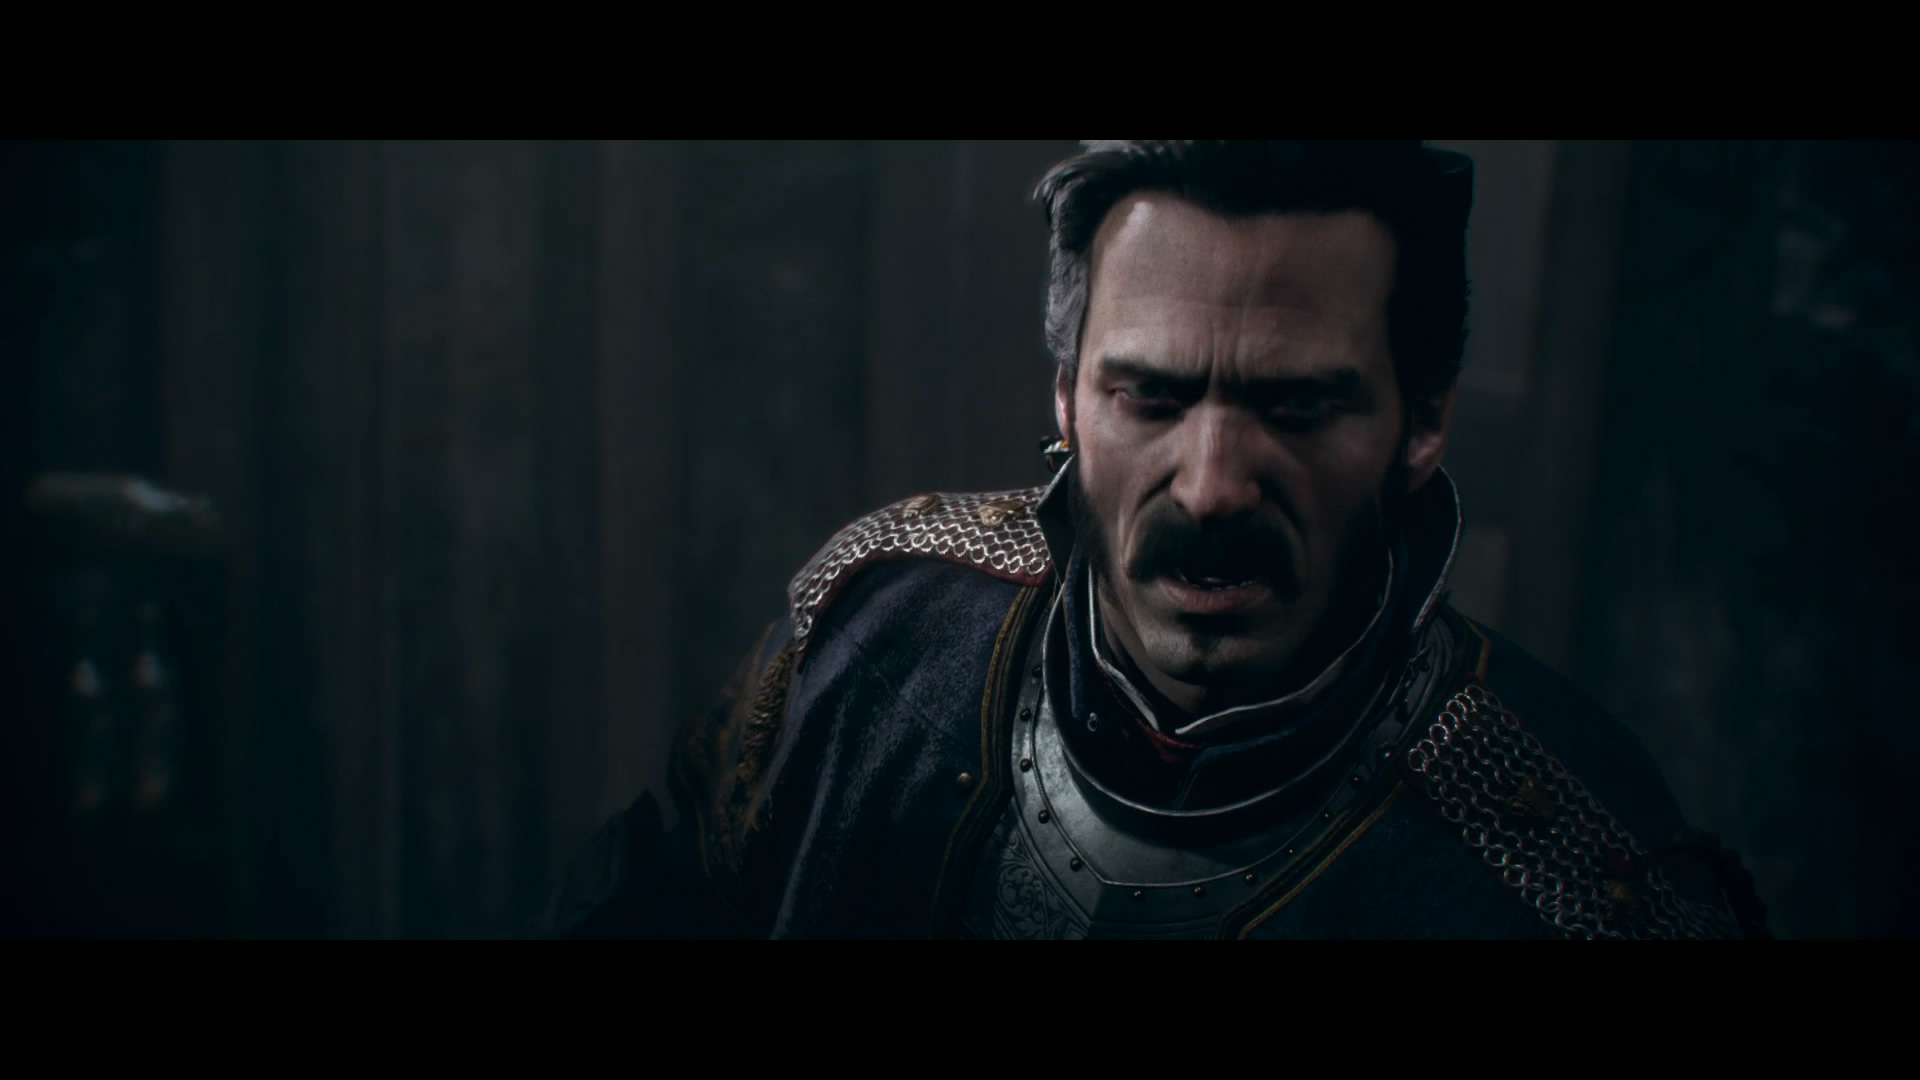 PS4 Exclusive The Order: 1886 ESRB Rating Reveals Intense